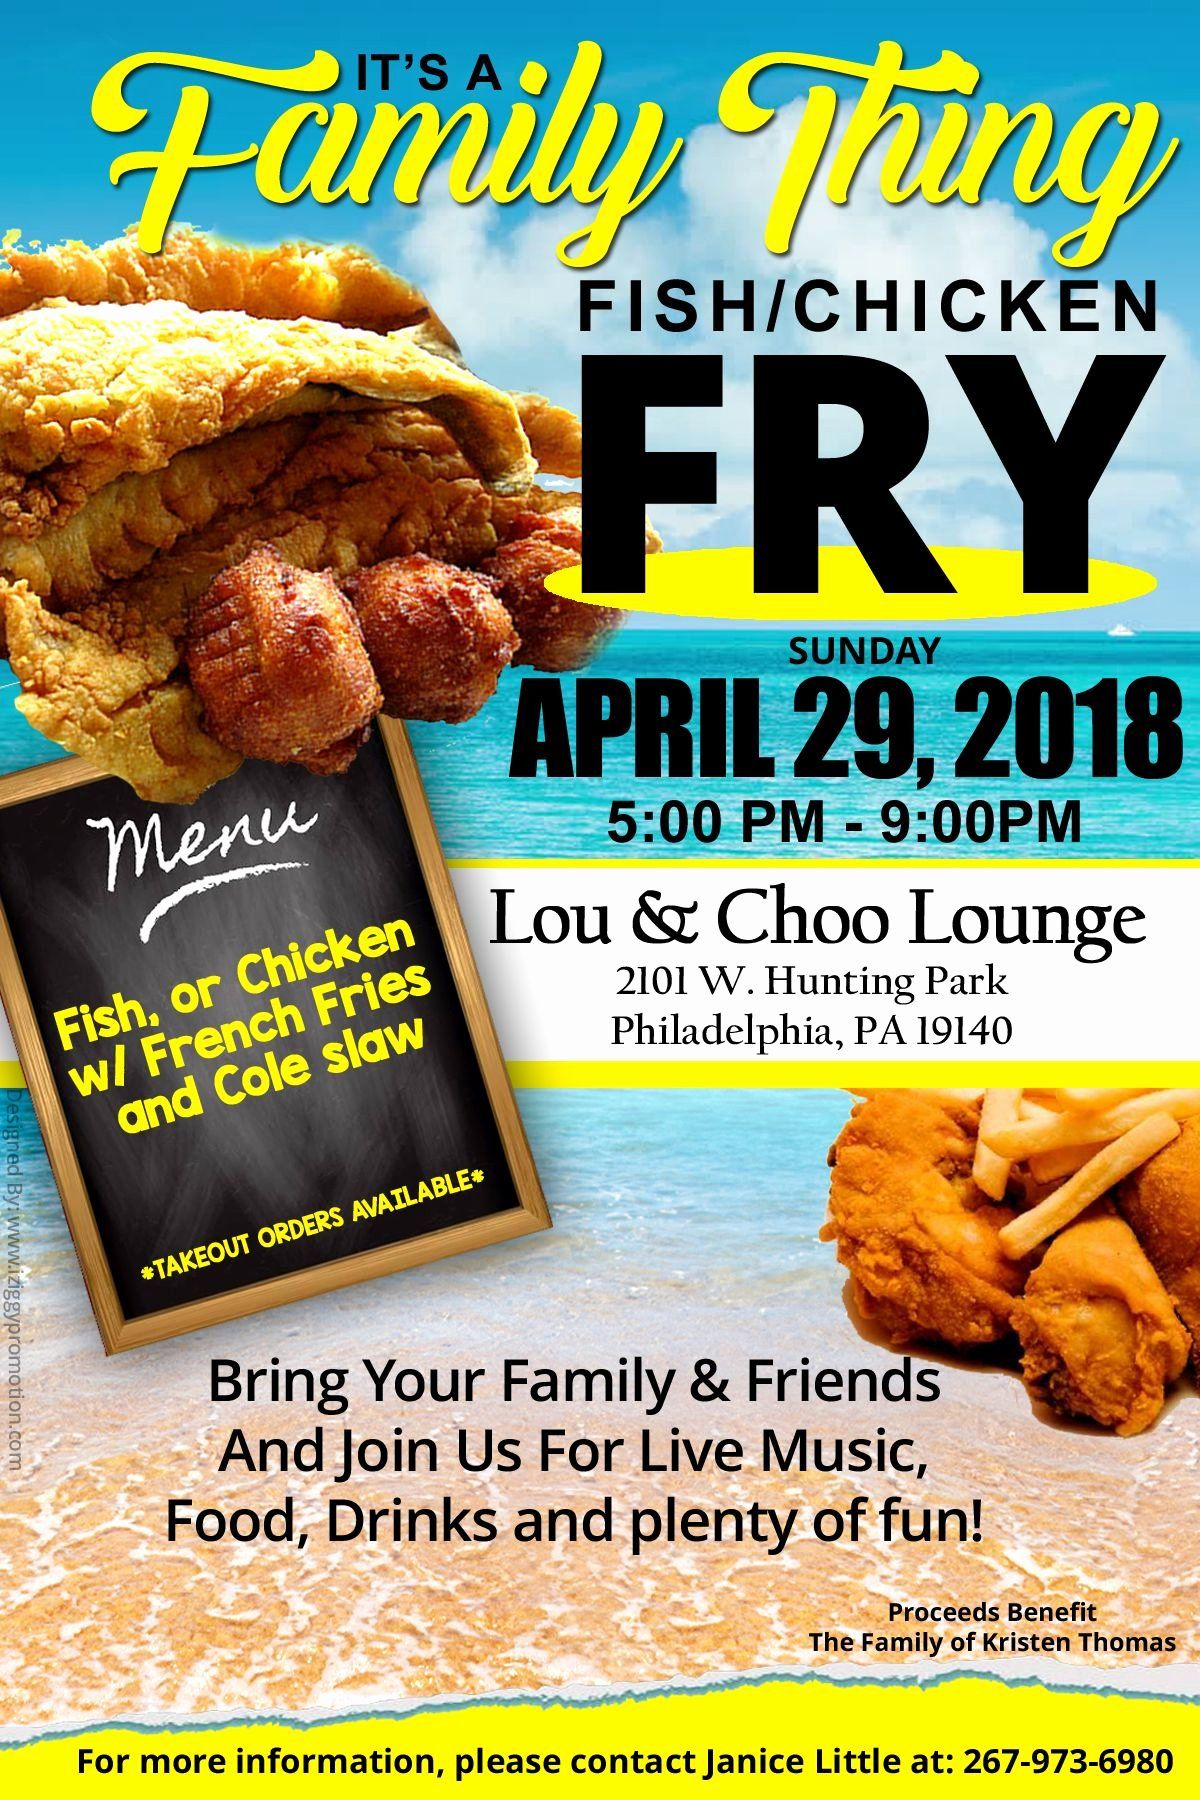 Fish Fry Flyer Template Inspirational Family Fish Fry Flyer Created By Iziggypromotion Fried Fish Flyer Template Fish Free fish fry flyer template